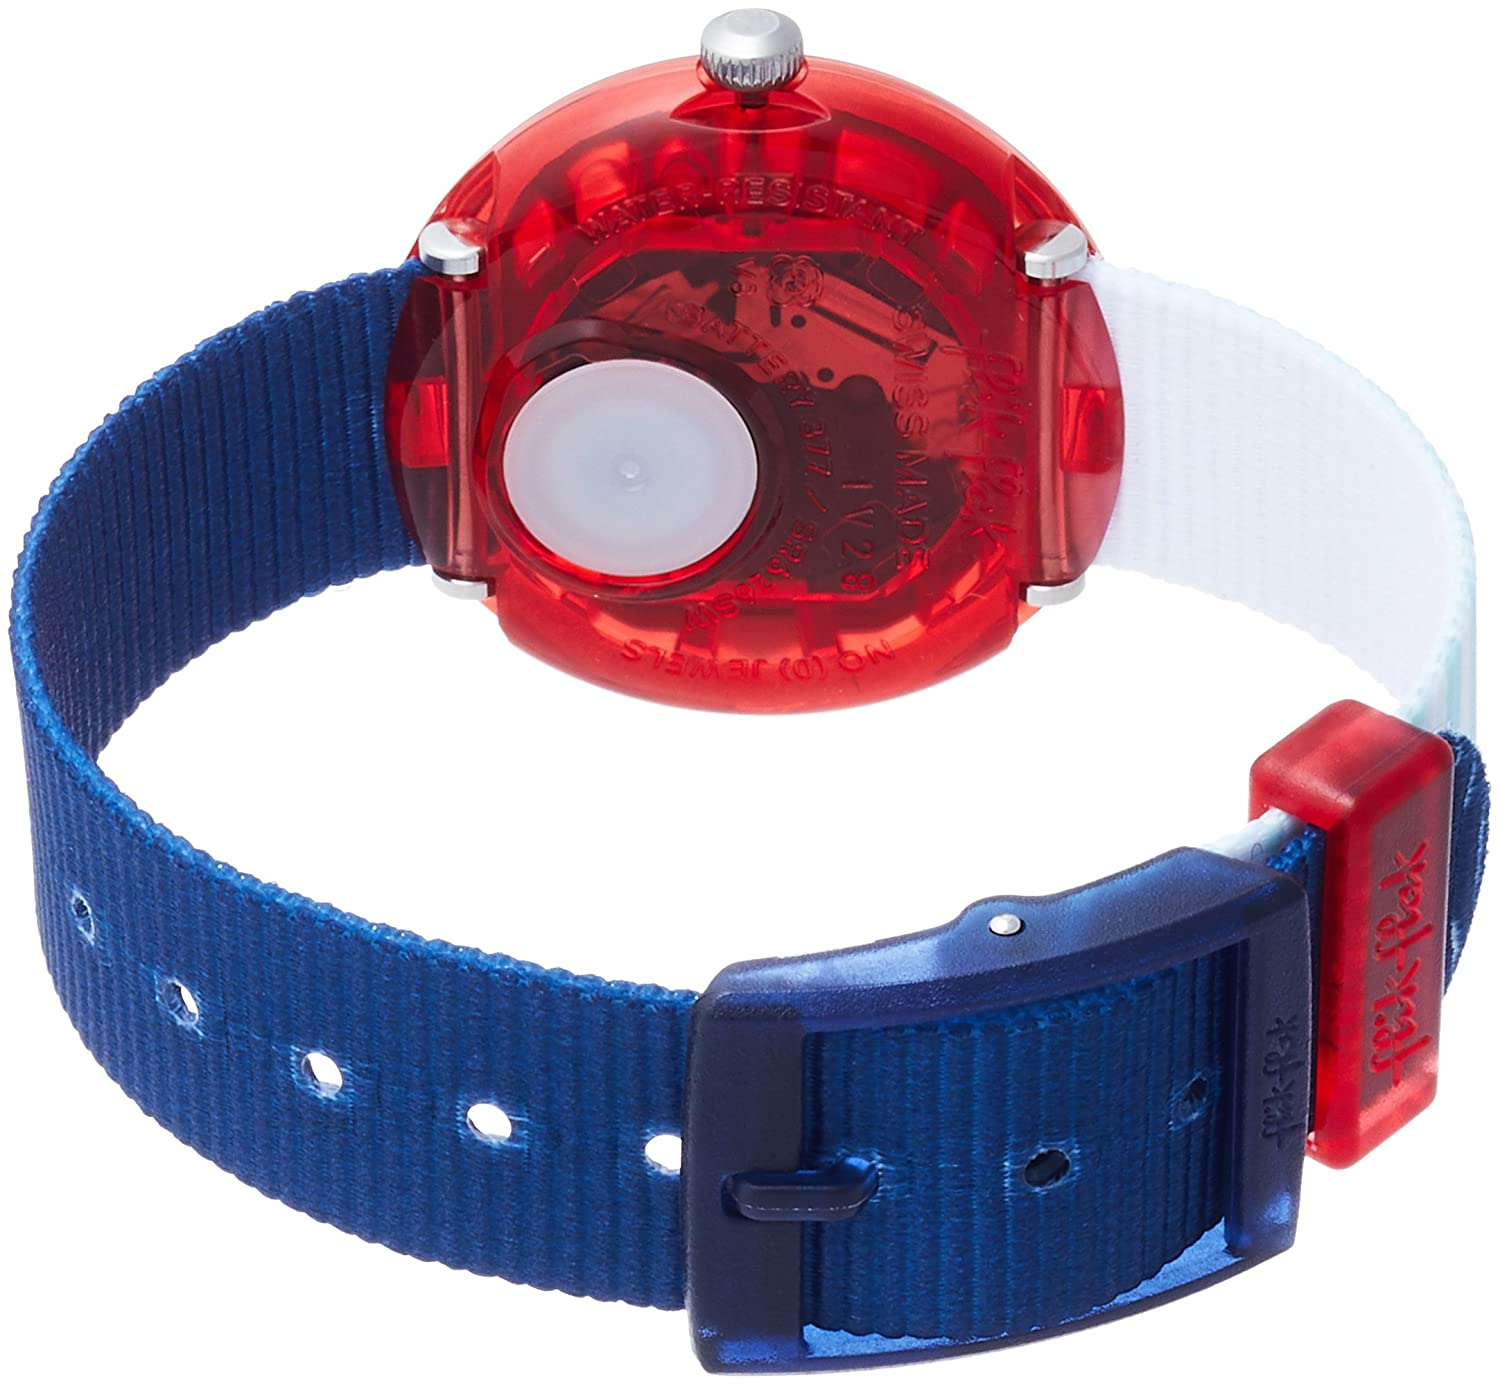 Amazon.com: Flik Flak Matrose Blue Red Fabric Strap Kids Watch FBNP090: Watches